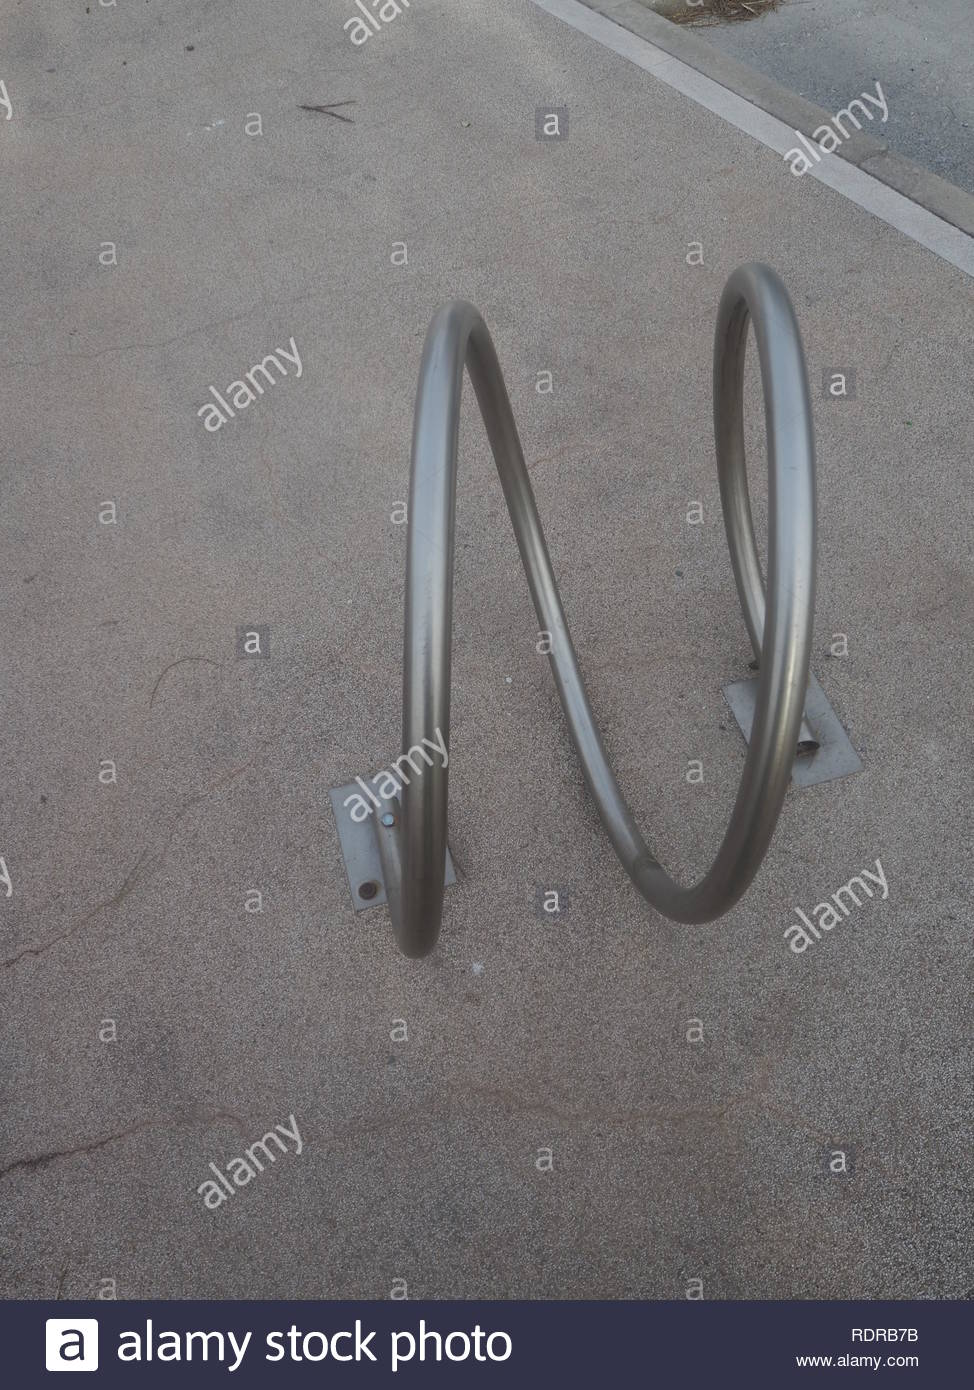 Metallic bicycle lock attachment base on the sidewalk Stock Photo